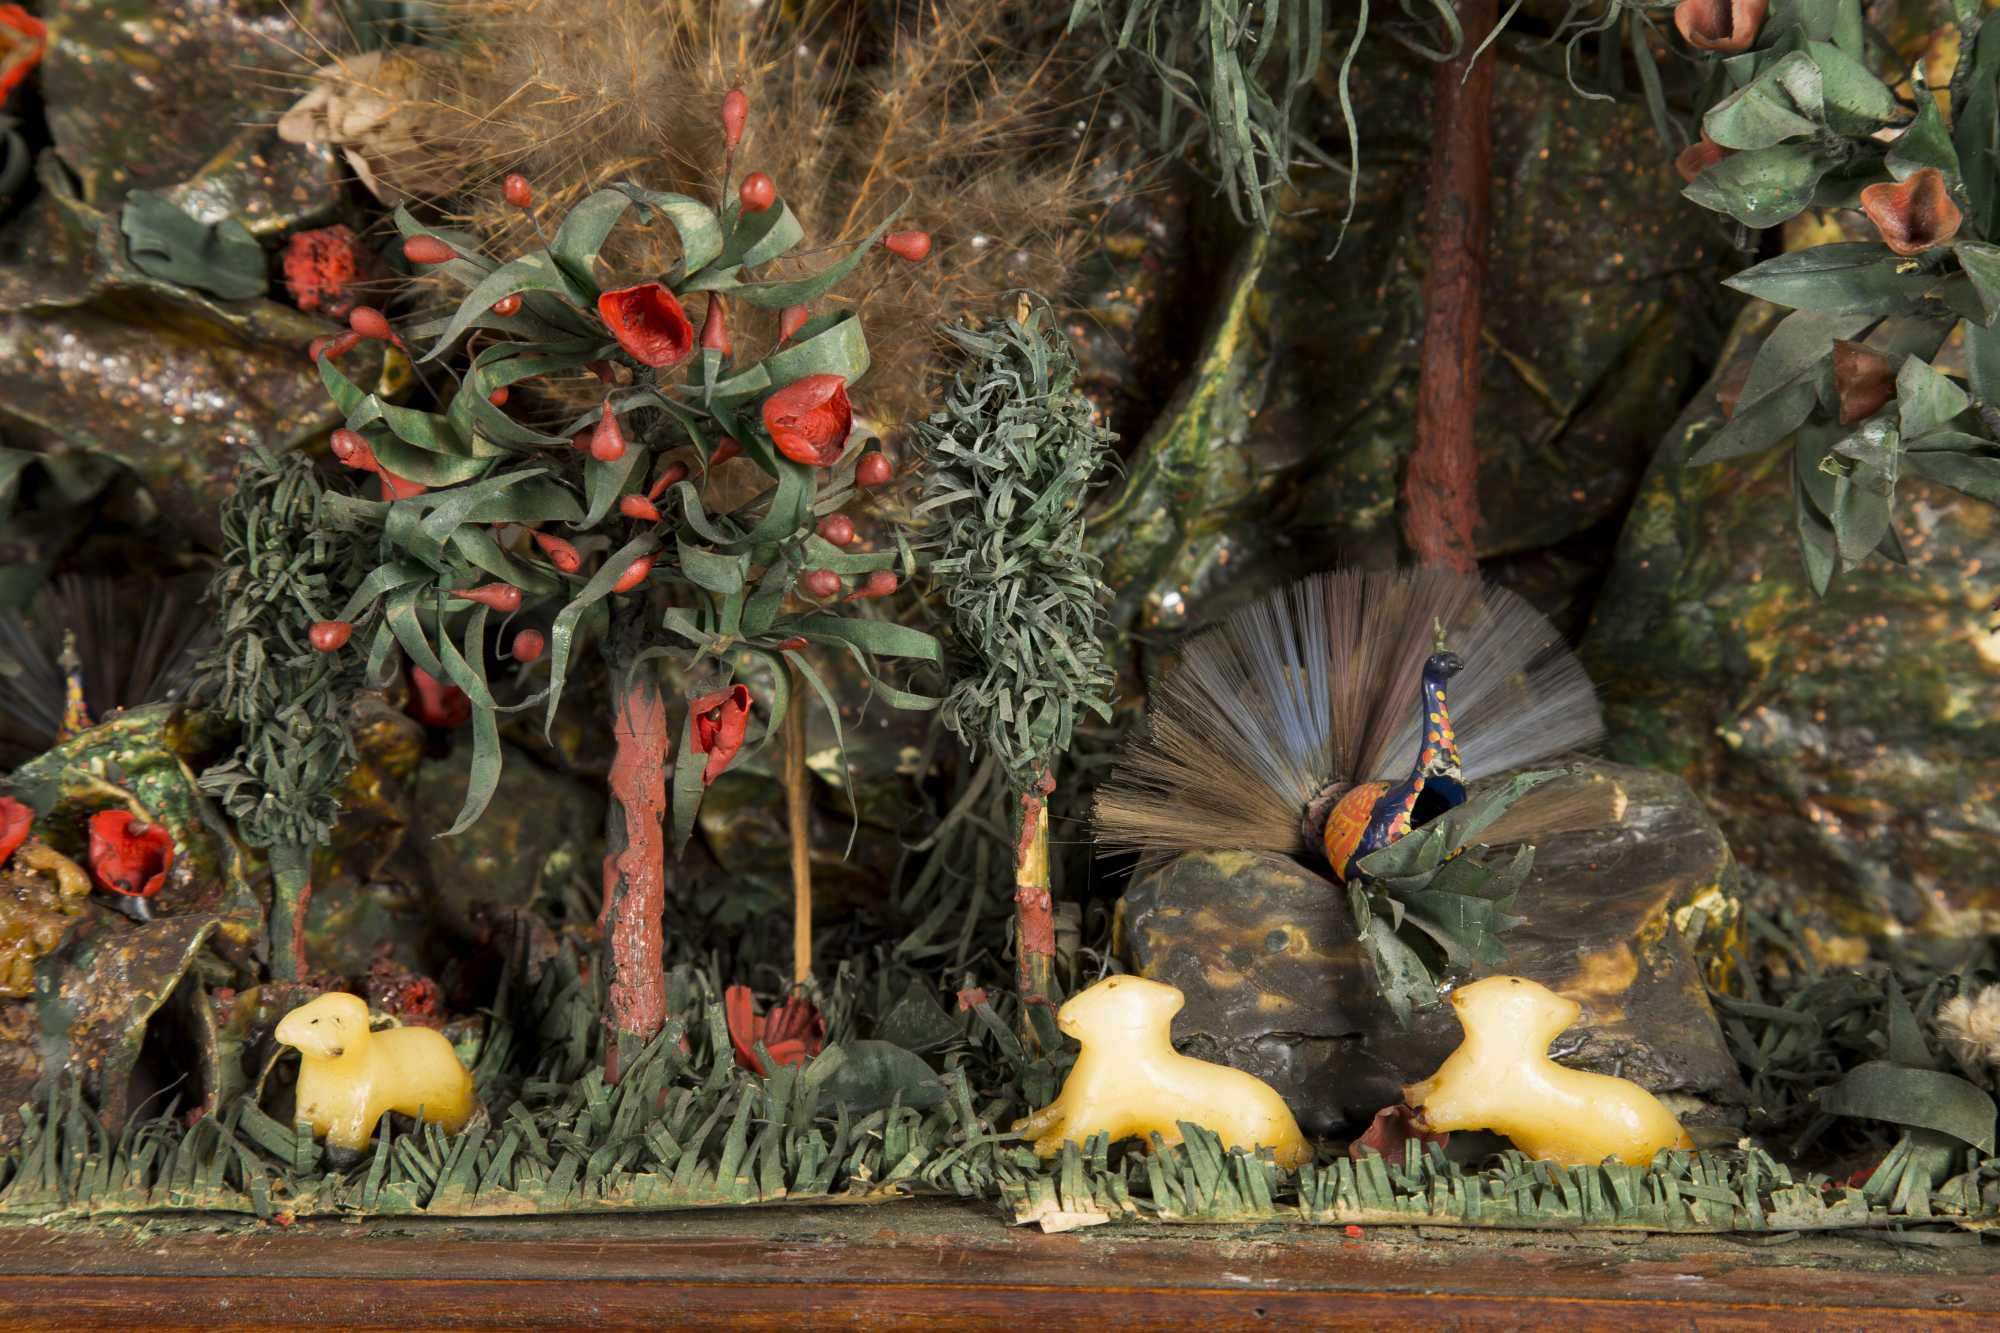 Diorama-An Exotic Garden of Paradise